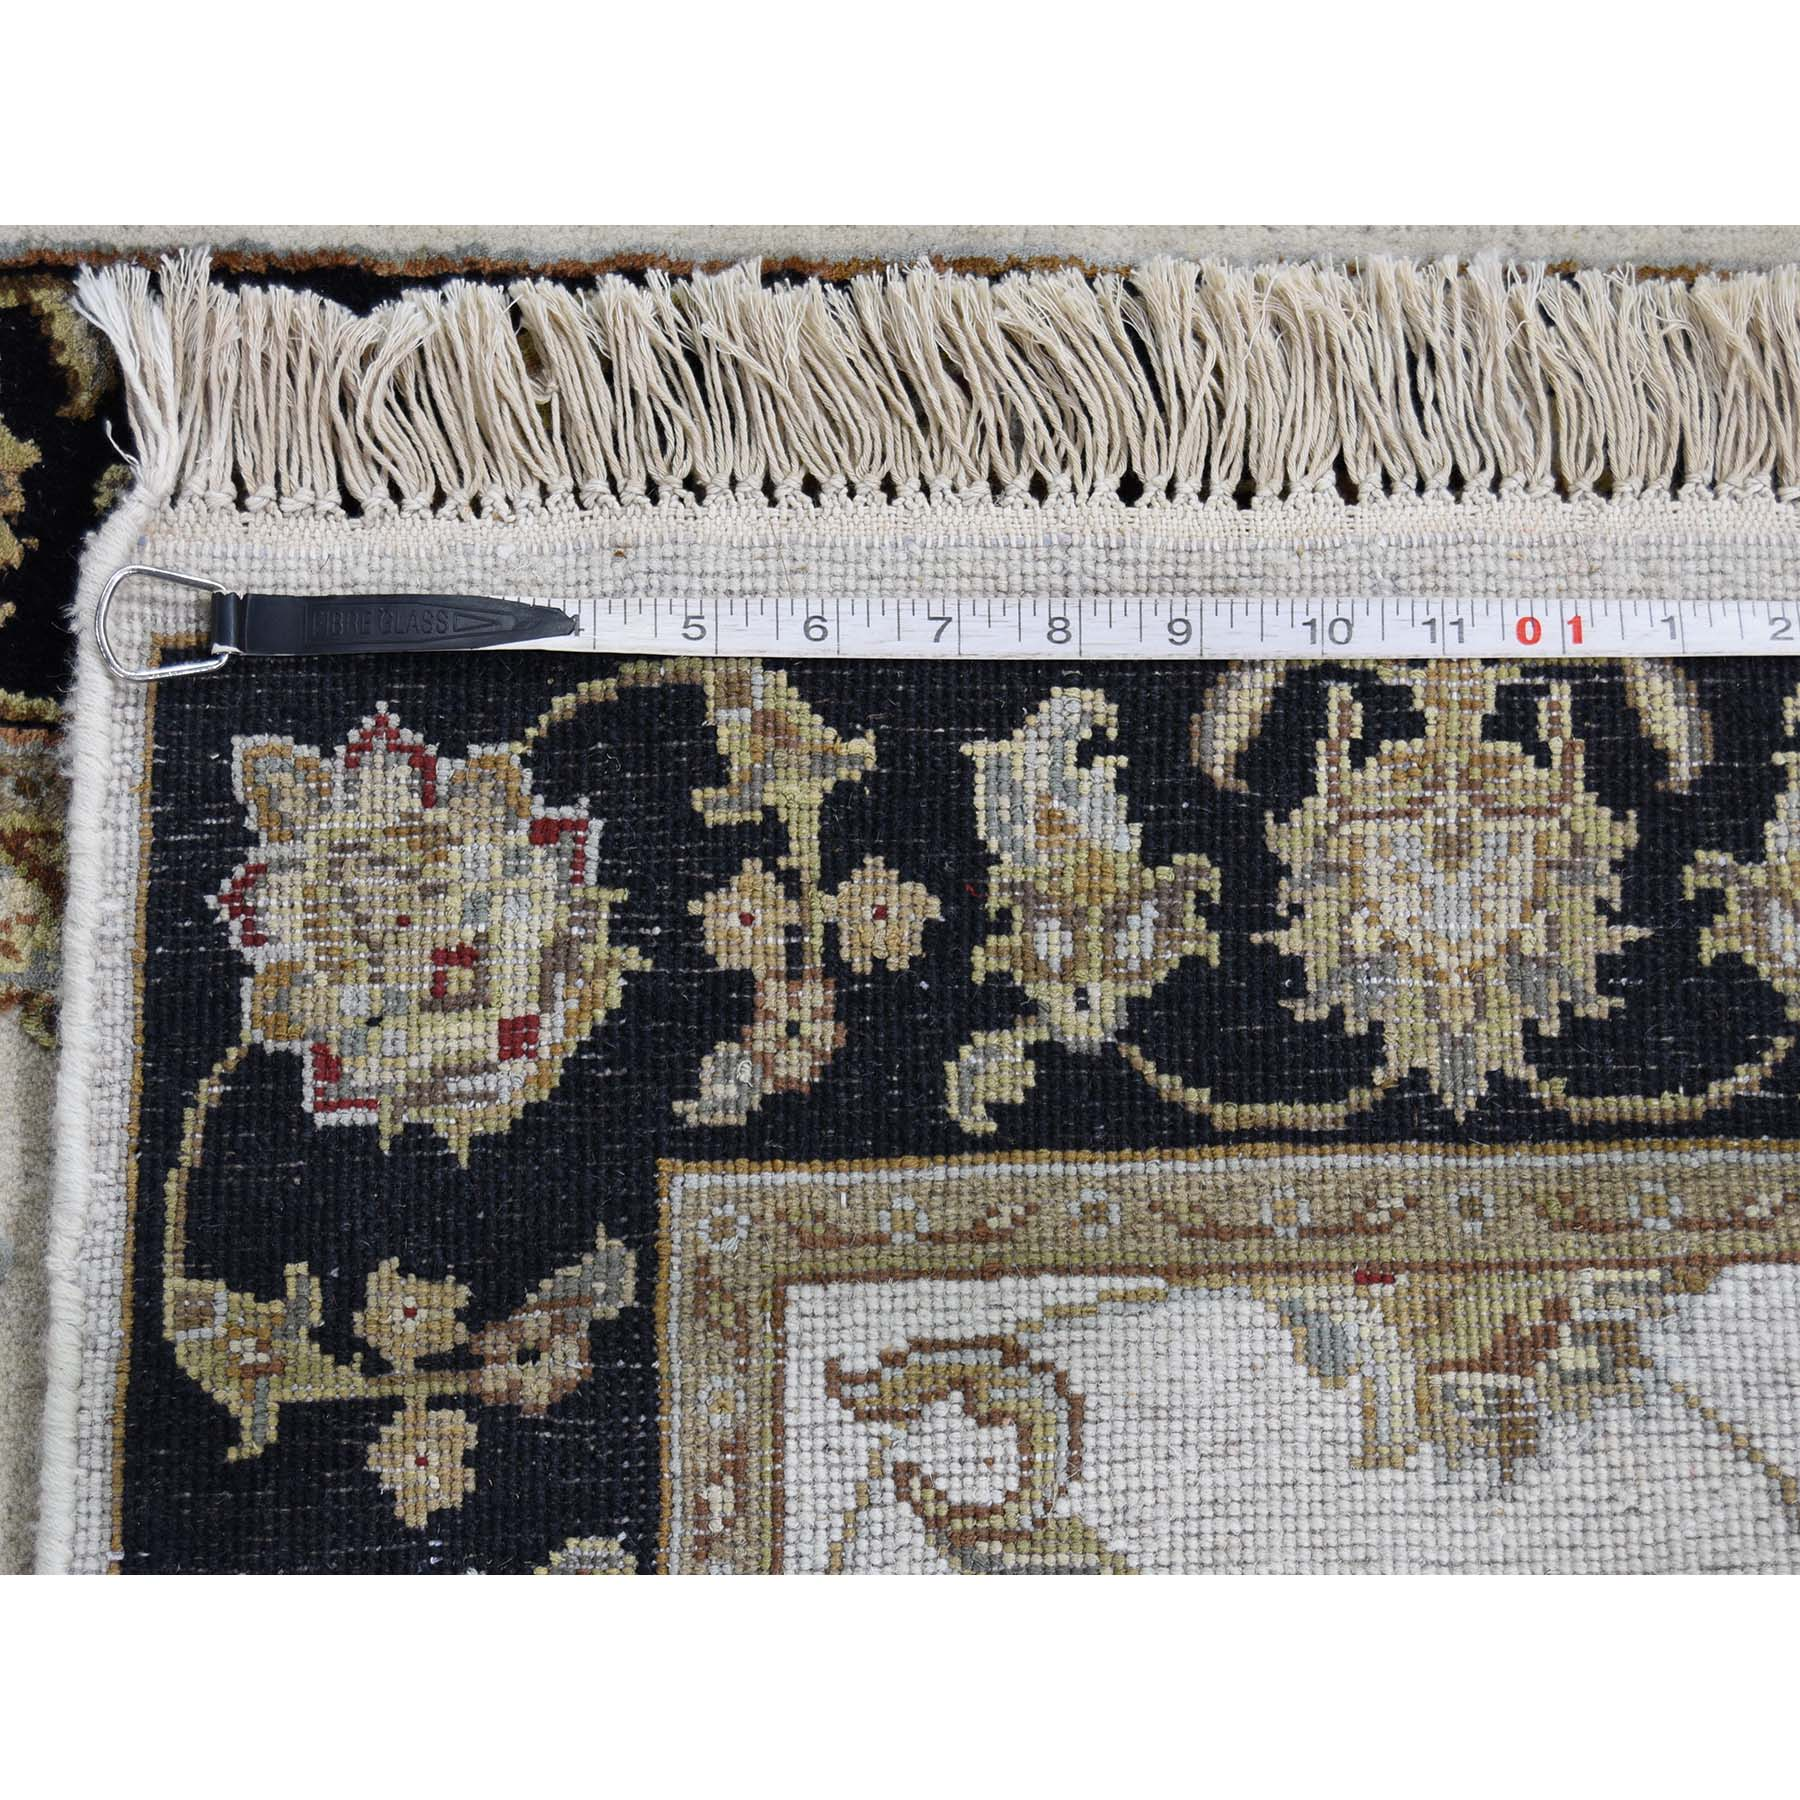 2-7 x15-10  Rajasthan Half Wool and Half Silk XL Runner Hand-Knotted Oriental Rug